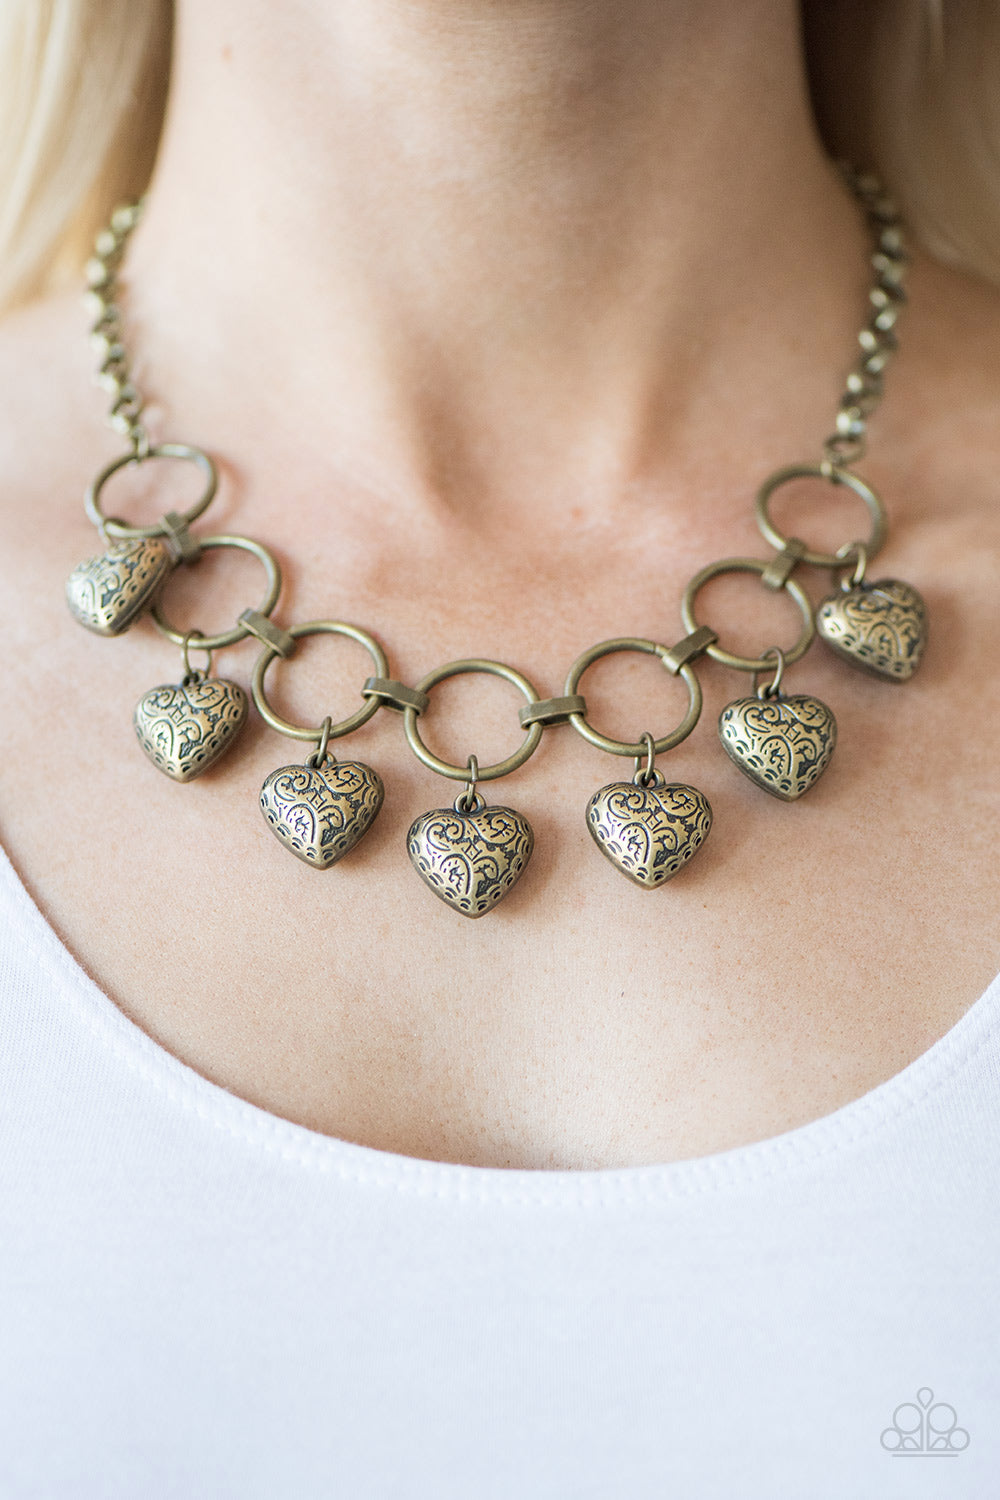 Stamped in whimsical patterns, vintage inspired hearts cascade from the bottom of airy brass hoops, creating a romantic fringe below the collar. Features an adjustable clasp closure.  Sold as one individual necklace. Includes one pair of matching earrings. Always nickel and lead free.